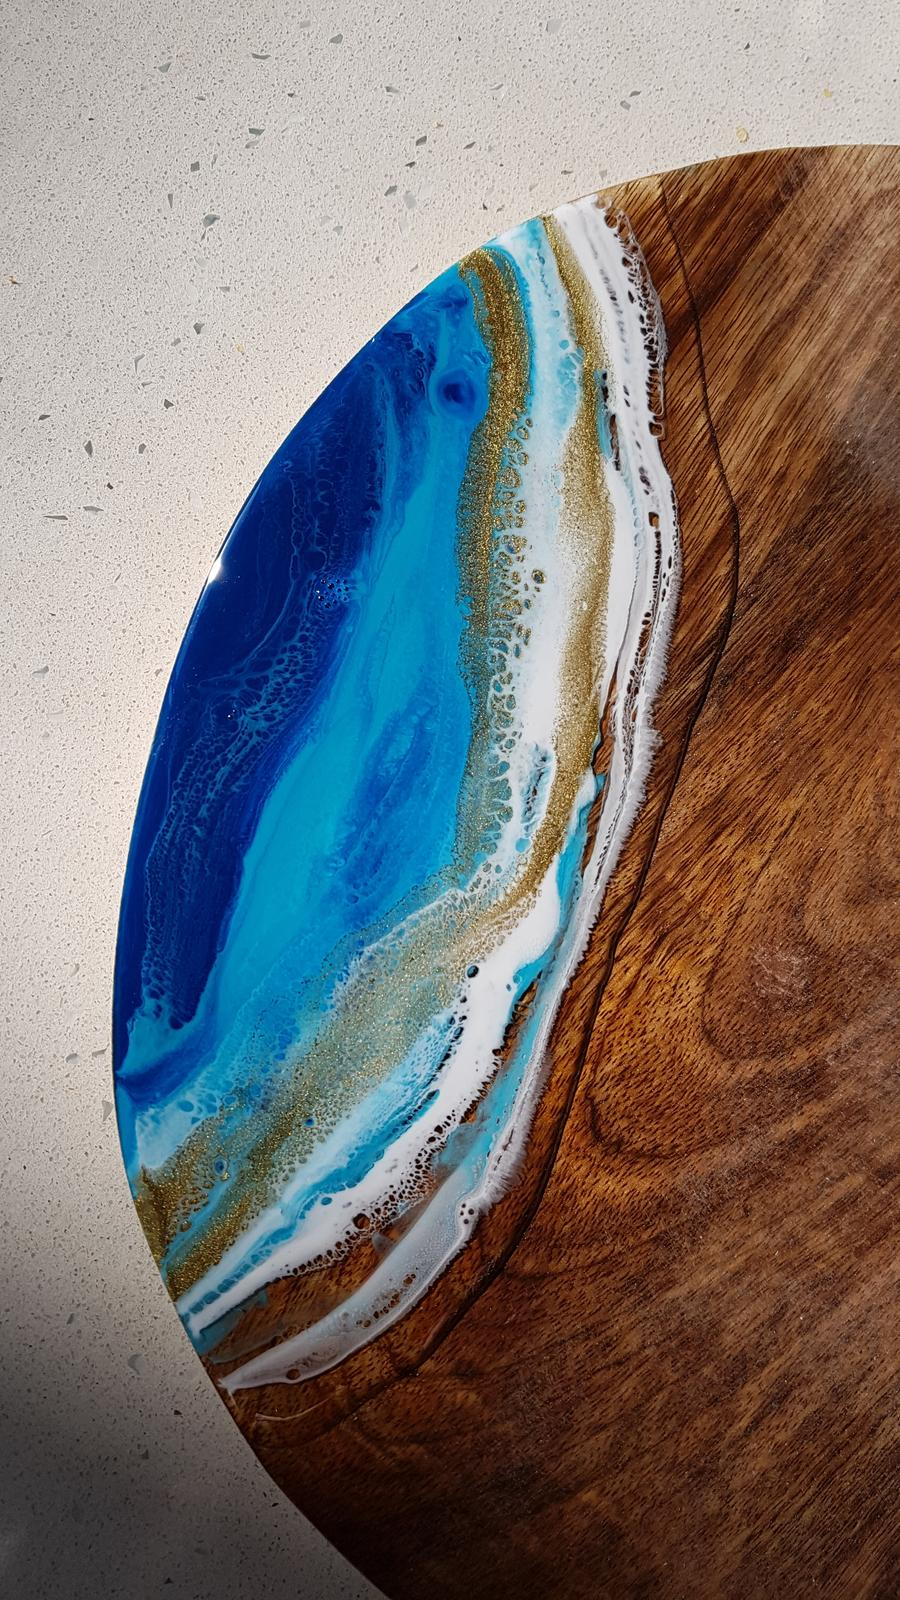 Intricately detailed resin serving boards